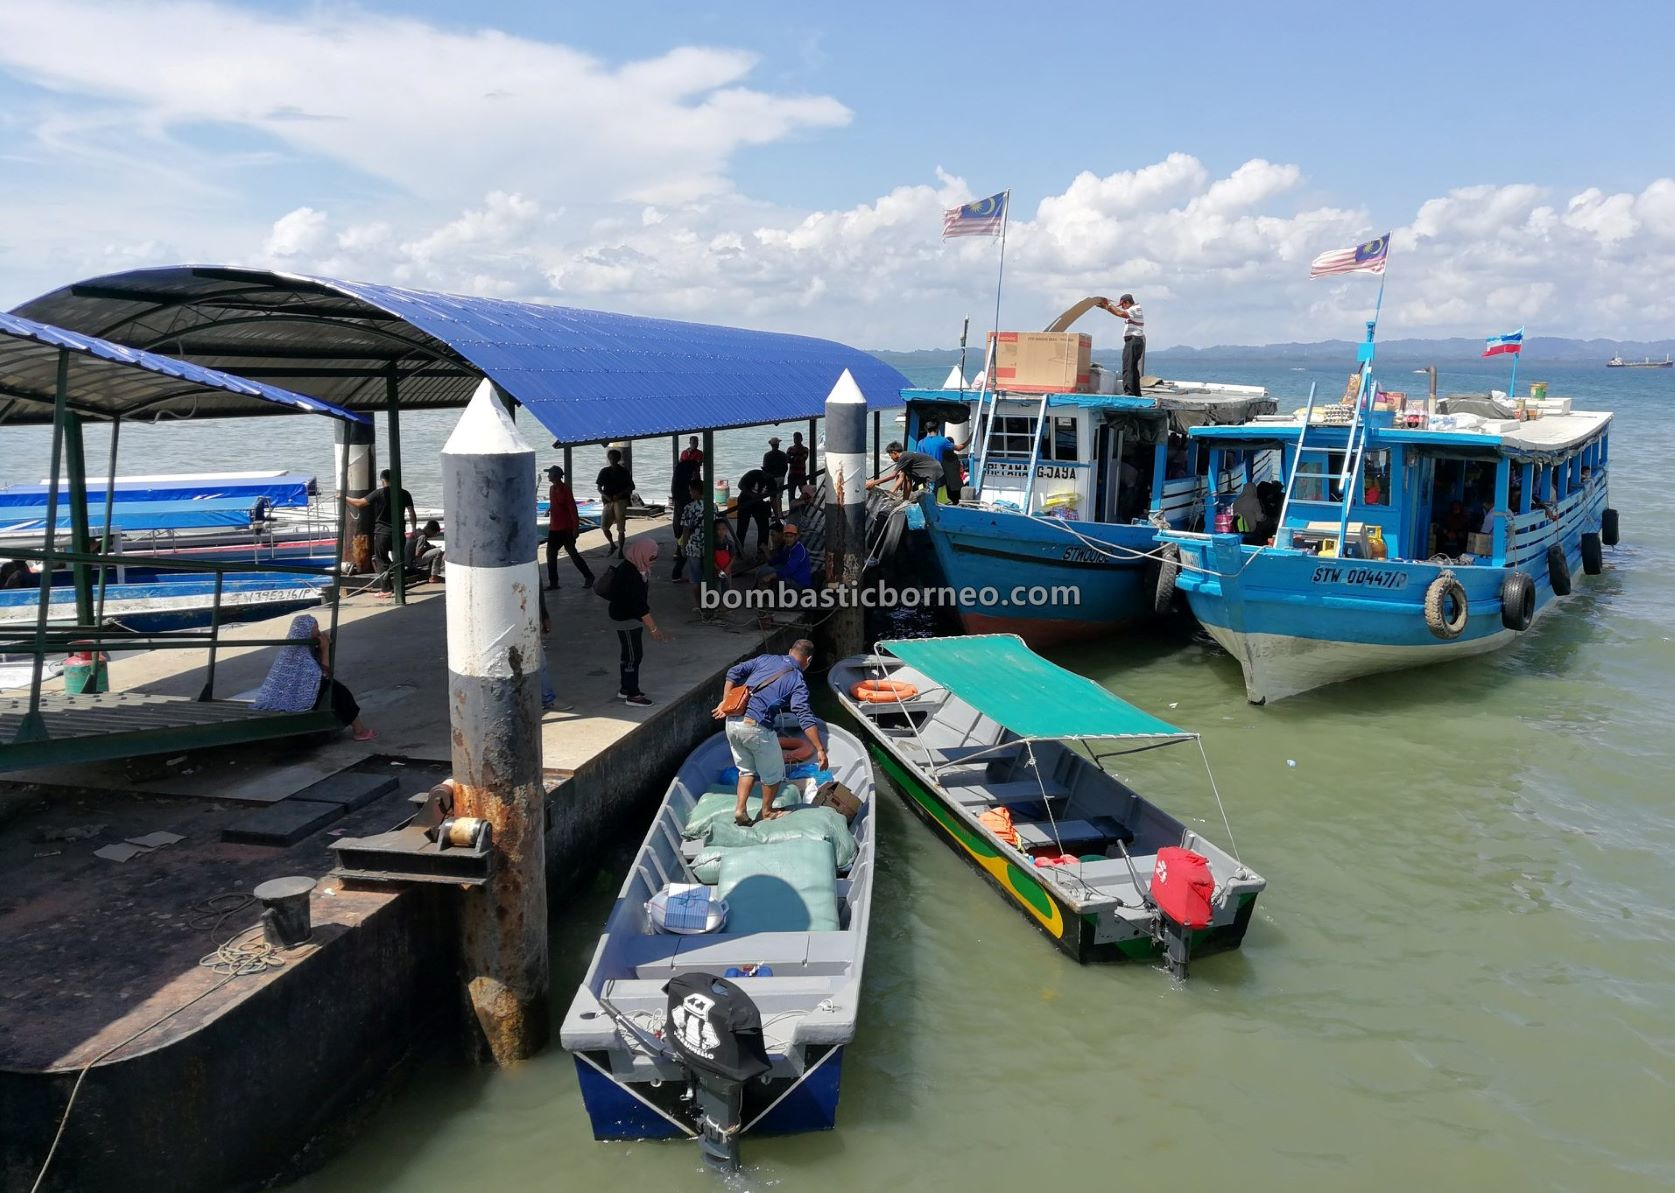 boat ride, adventure, backpackers, destination, exploration, jeti, Transportation, wharf, port, Tourism, tourist attraction, Borneo, 婆罗洲游踪, 马来西亚沙巴斗湖